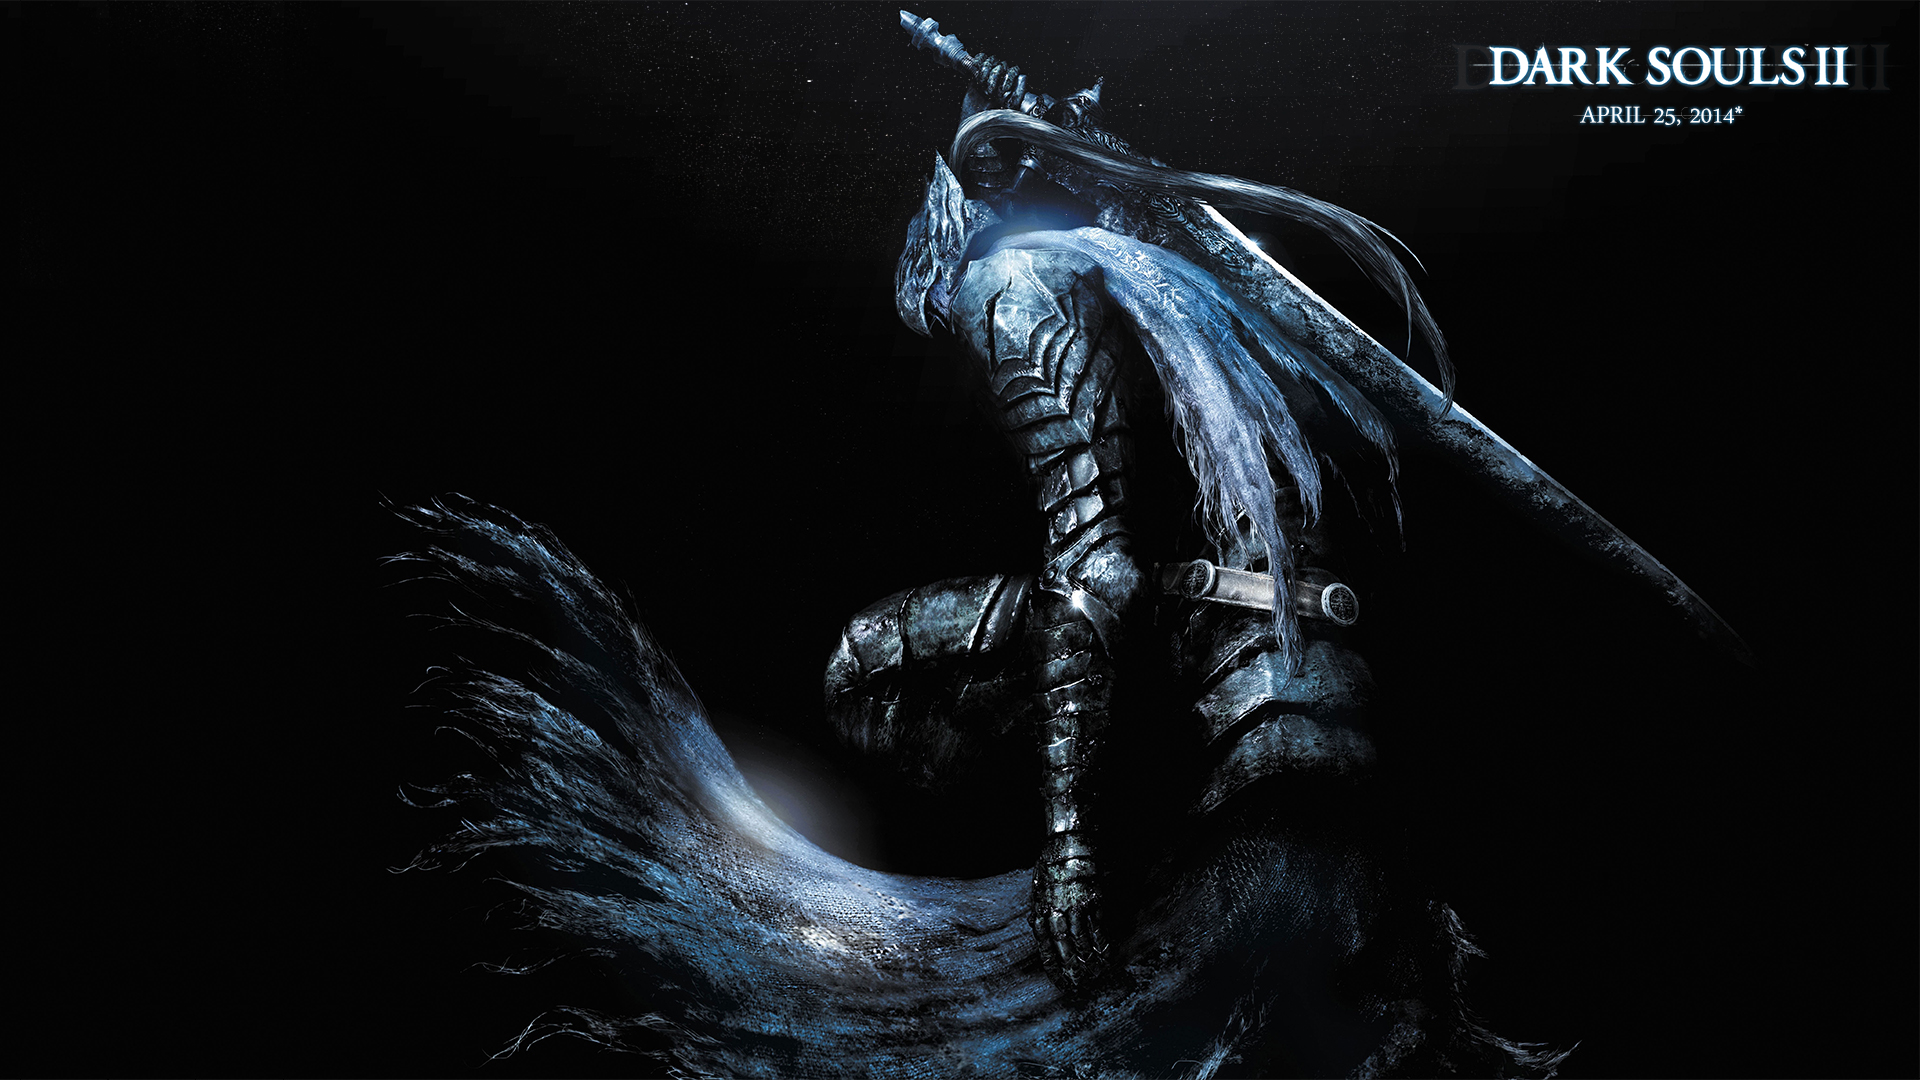 Dark Souls 2 Wallpaper Blue By Syntheticarts On Deviantart